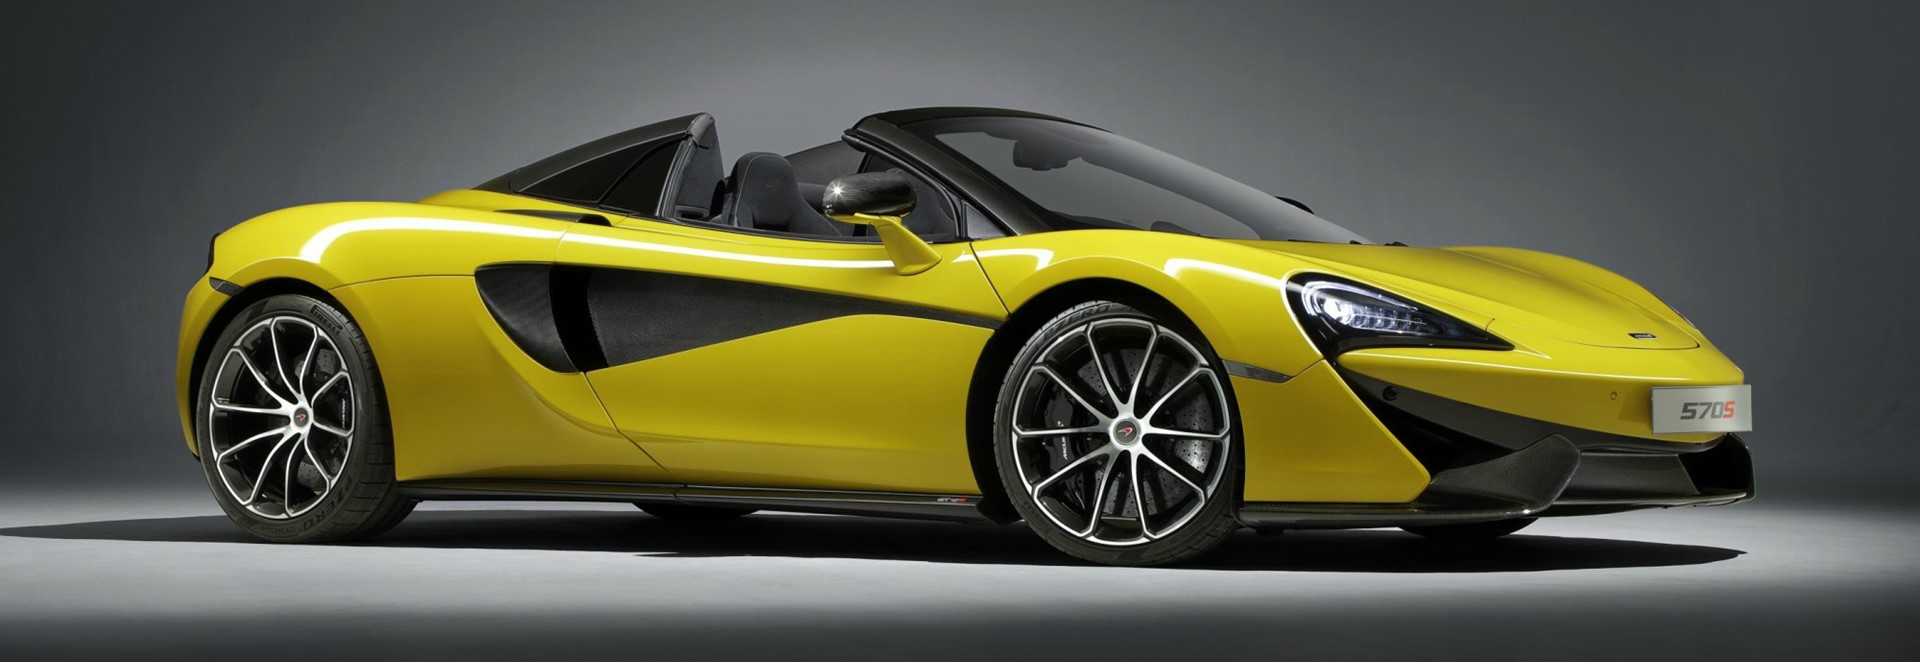 McLaren 570S Spider pricing and details unveiled